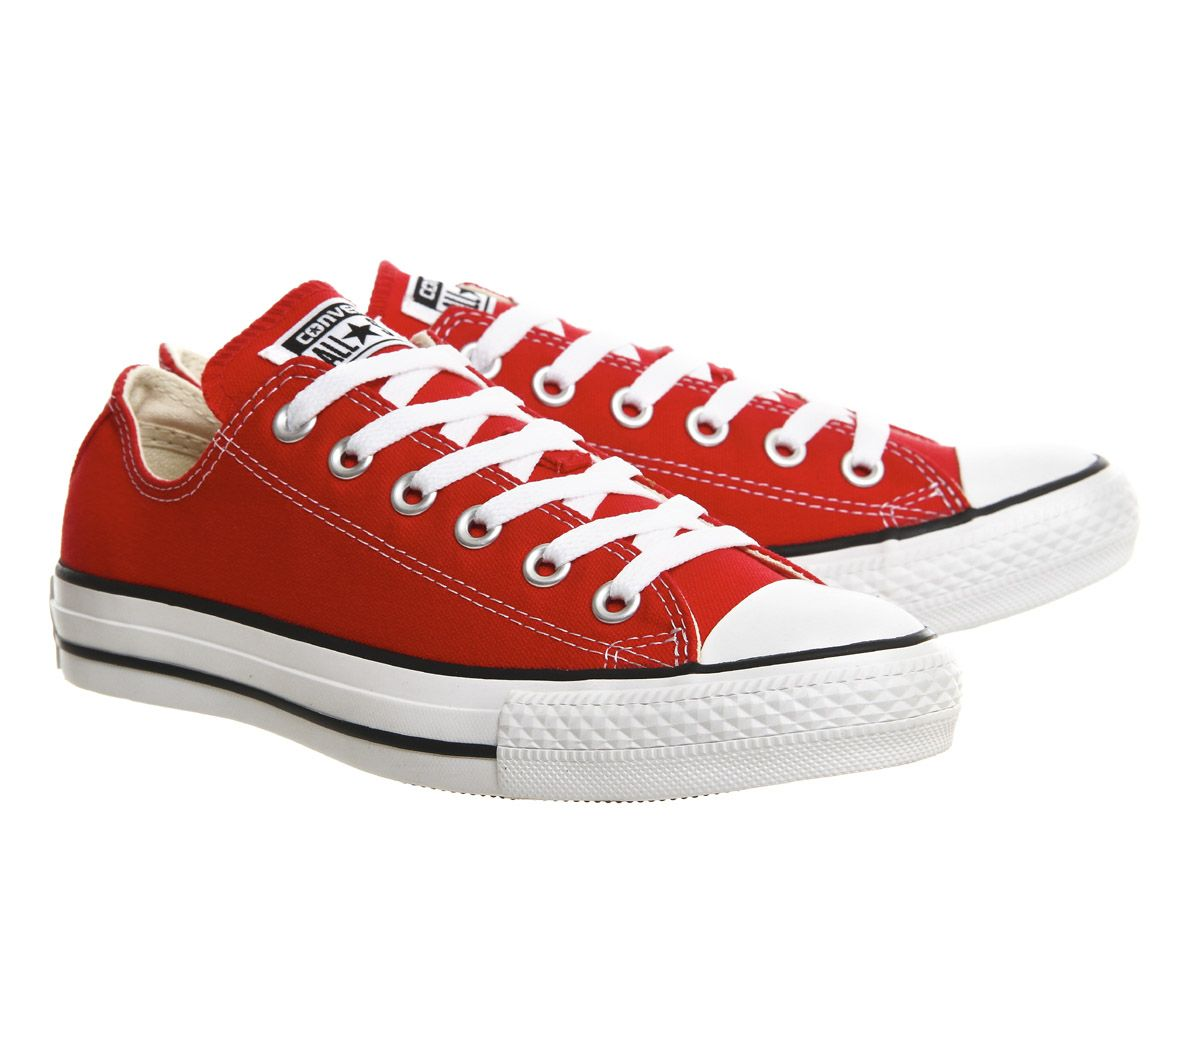 66d26a16 Sentinel Mens Converse All Star Low Red Canvas Trainers Shoes